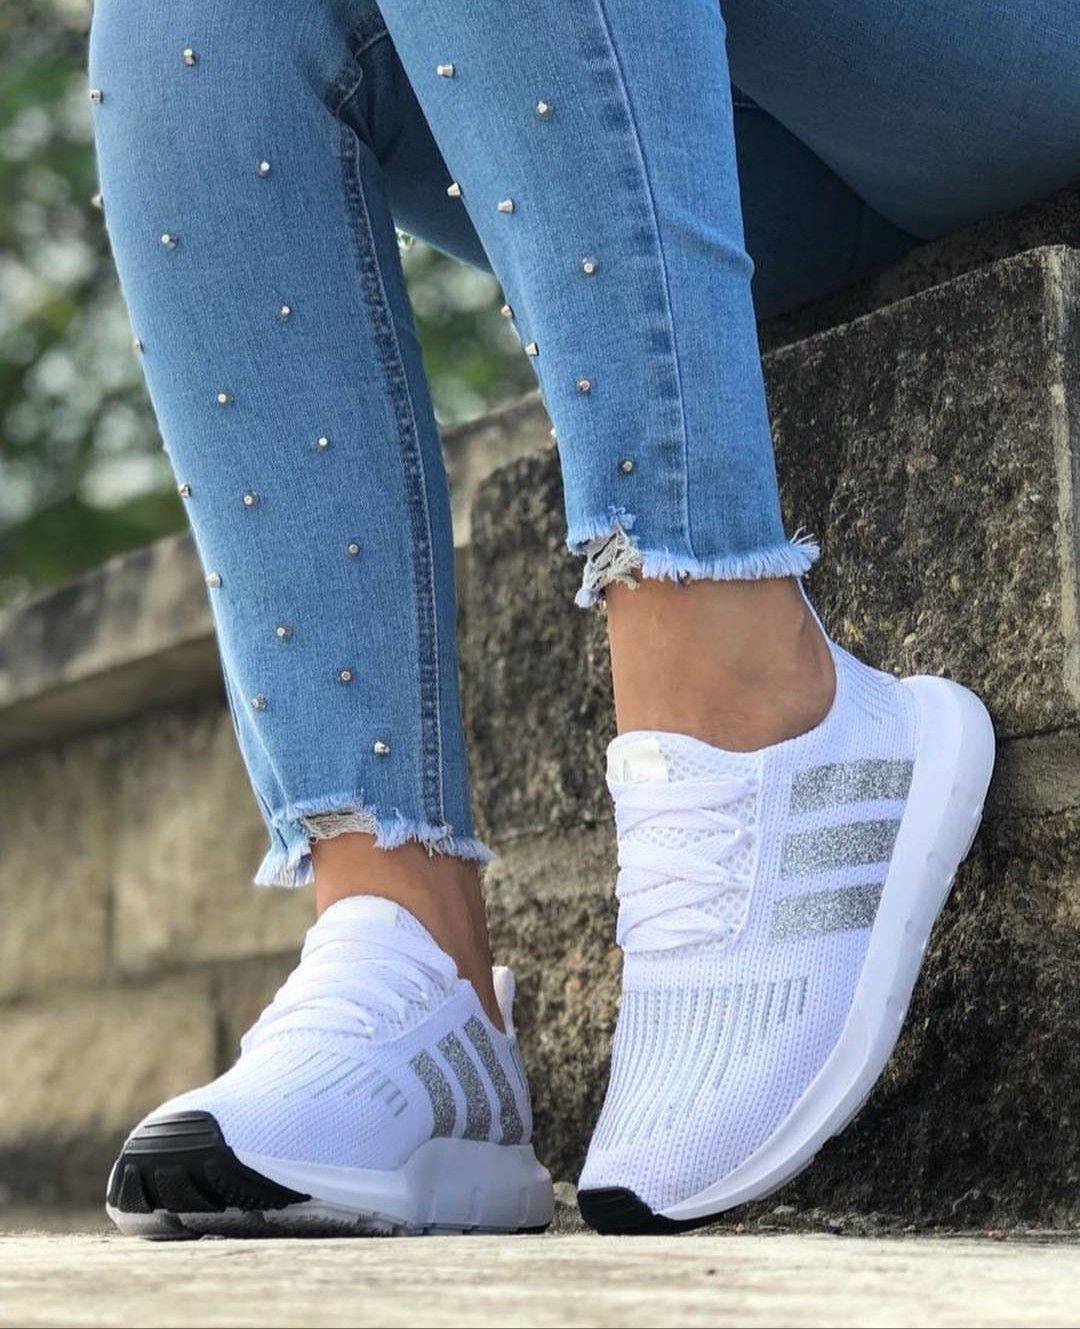 Ciudad elemento giratorio  Pin by Luis Eduardo Rojas Gamboa on put it on the feet | Adidas shoes  women, Addidas shoes, Adidas running shoes